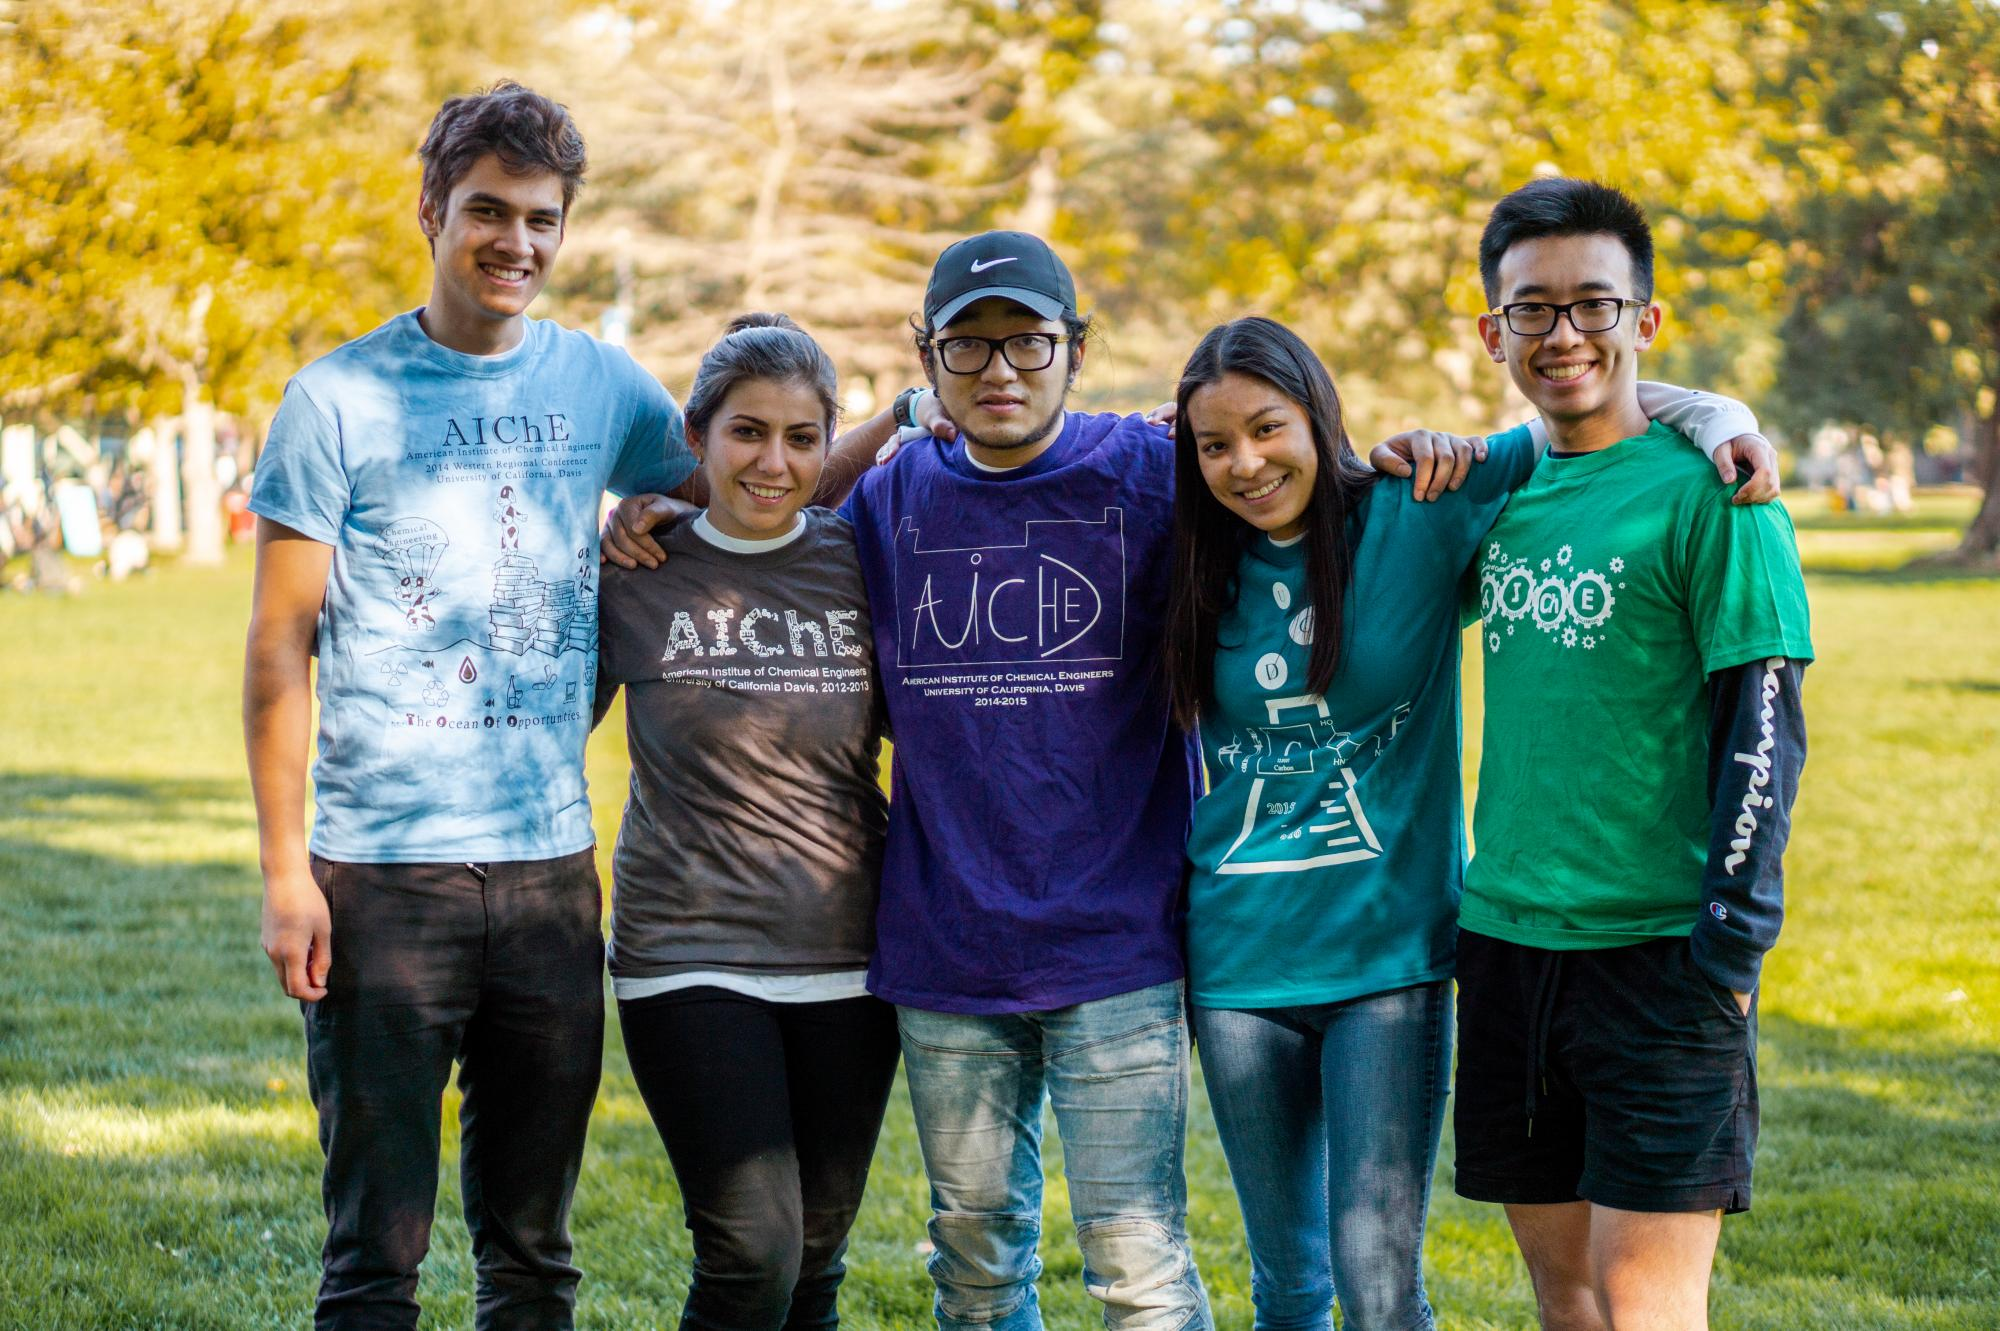 AIChE officers showing off club shirts